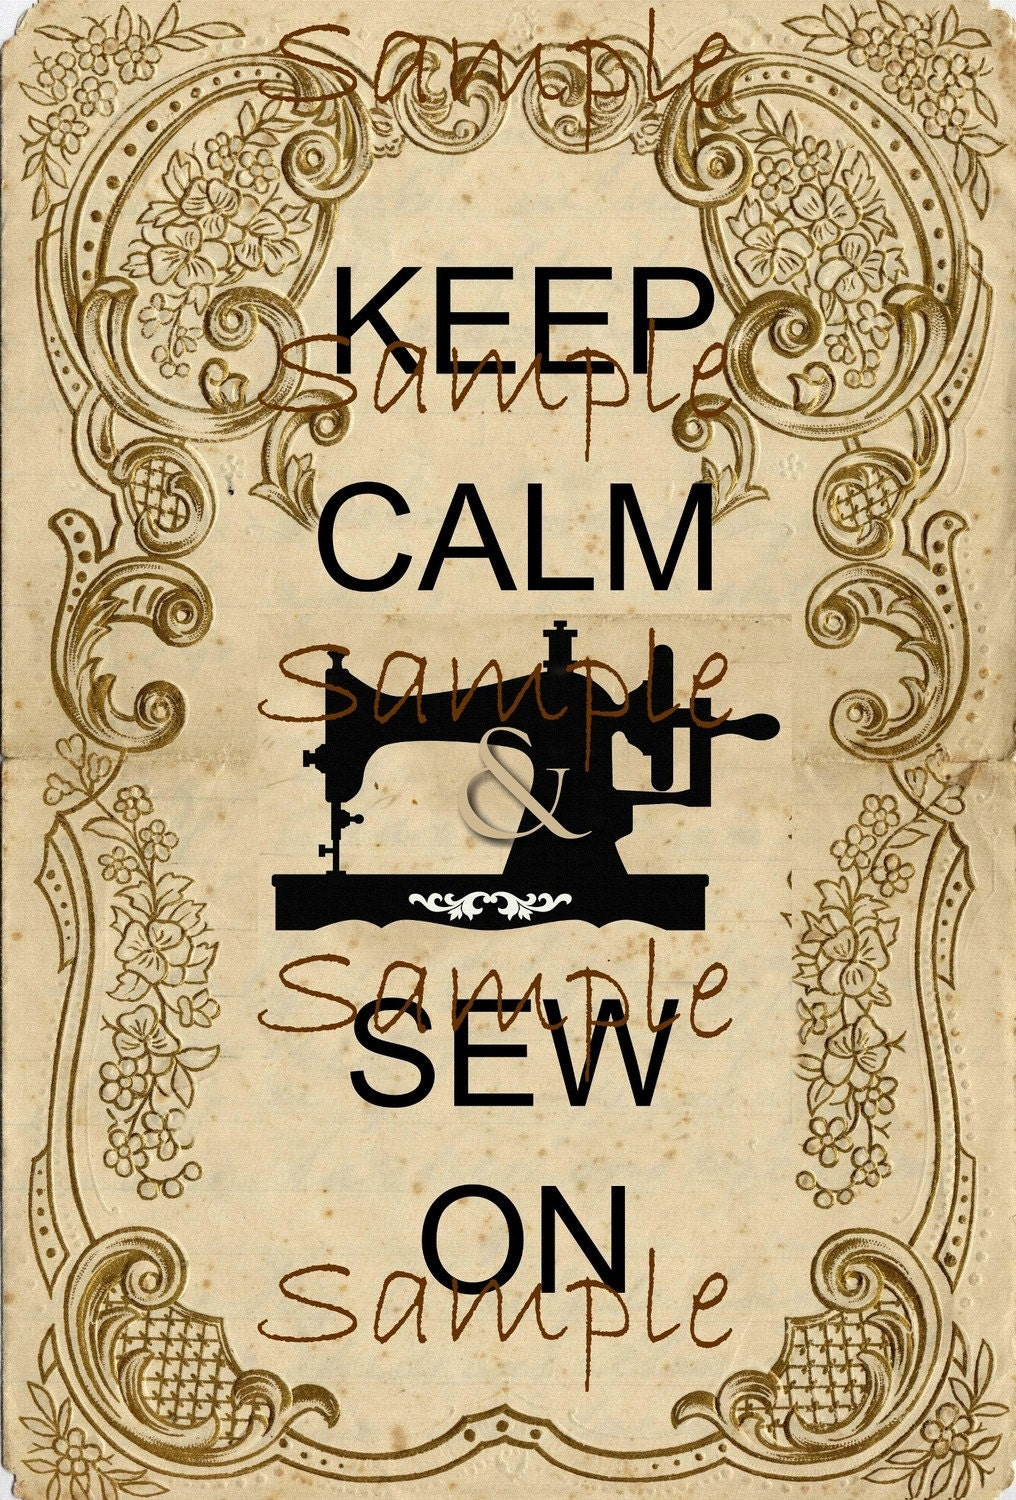 Instant Download Keep Calm and Sew On... Large Image   Etsy